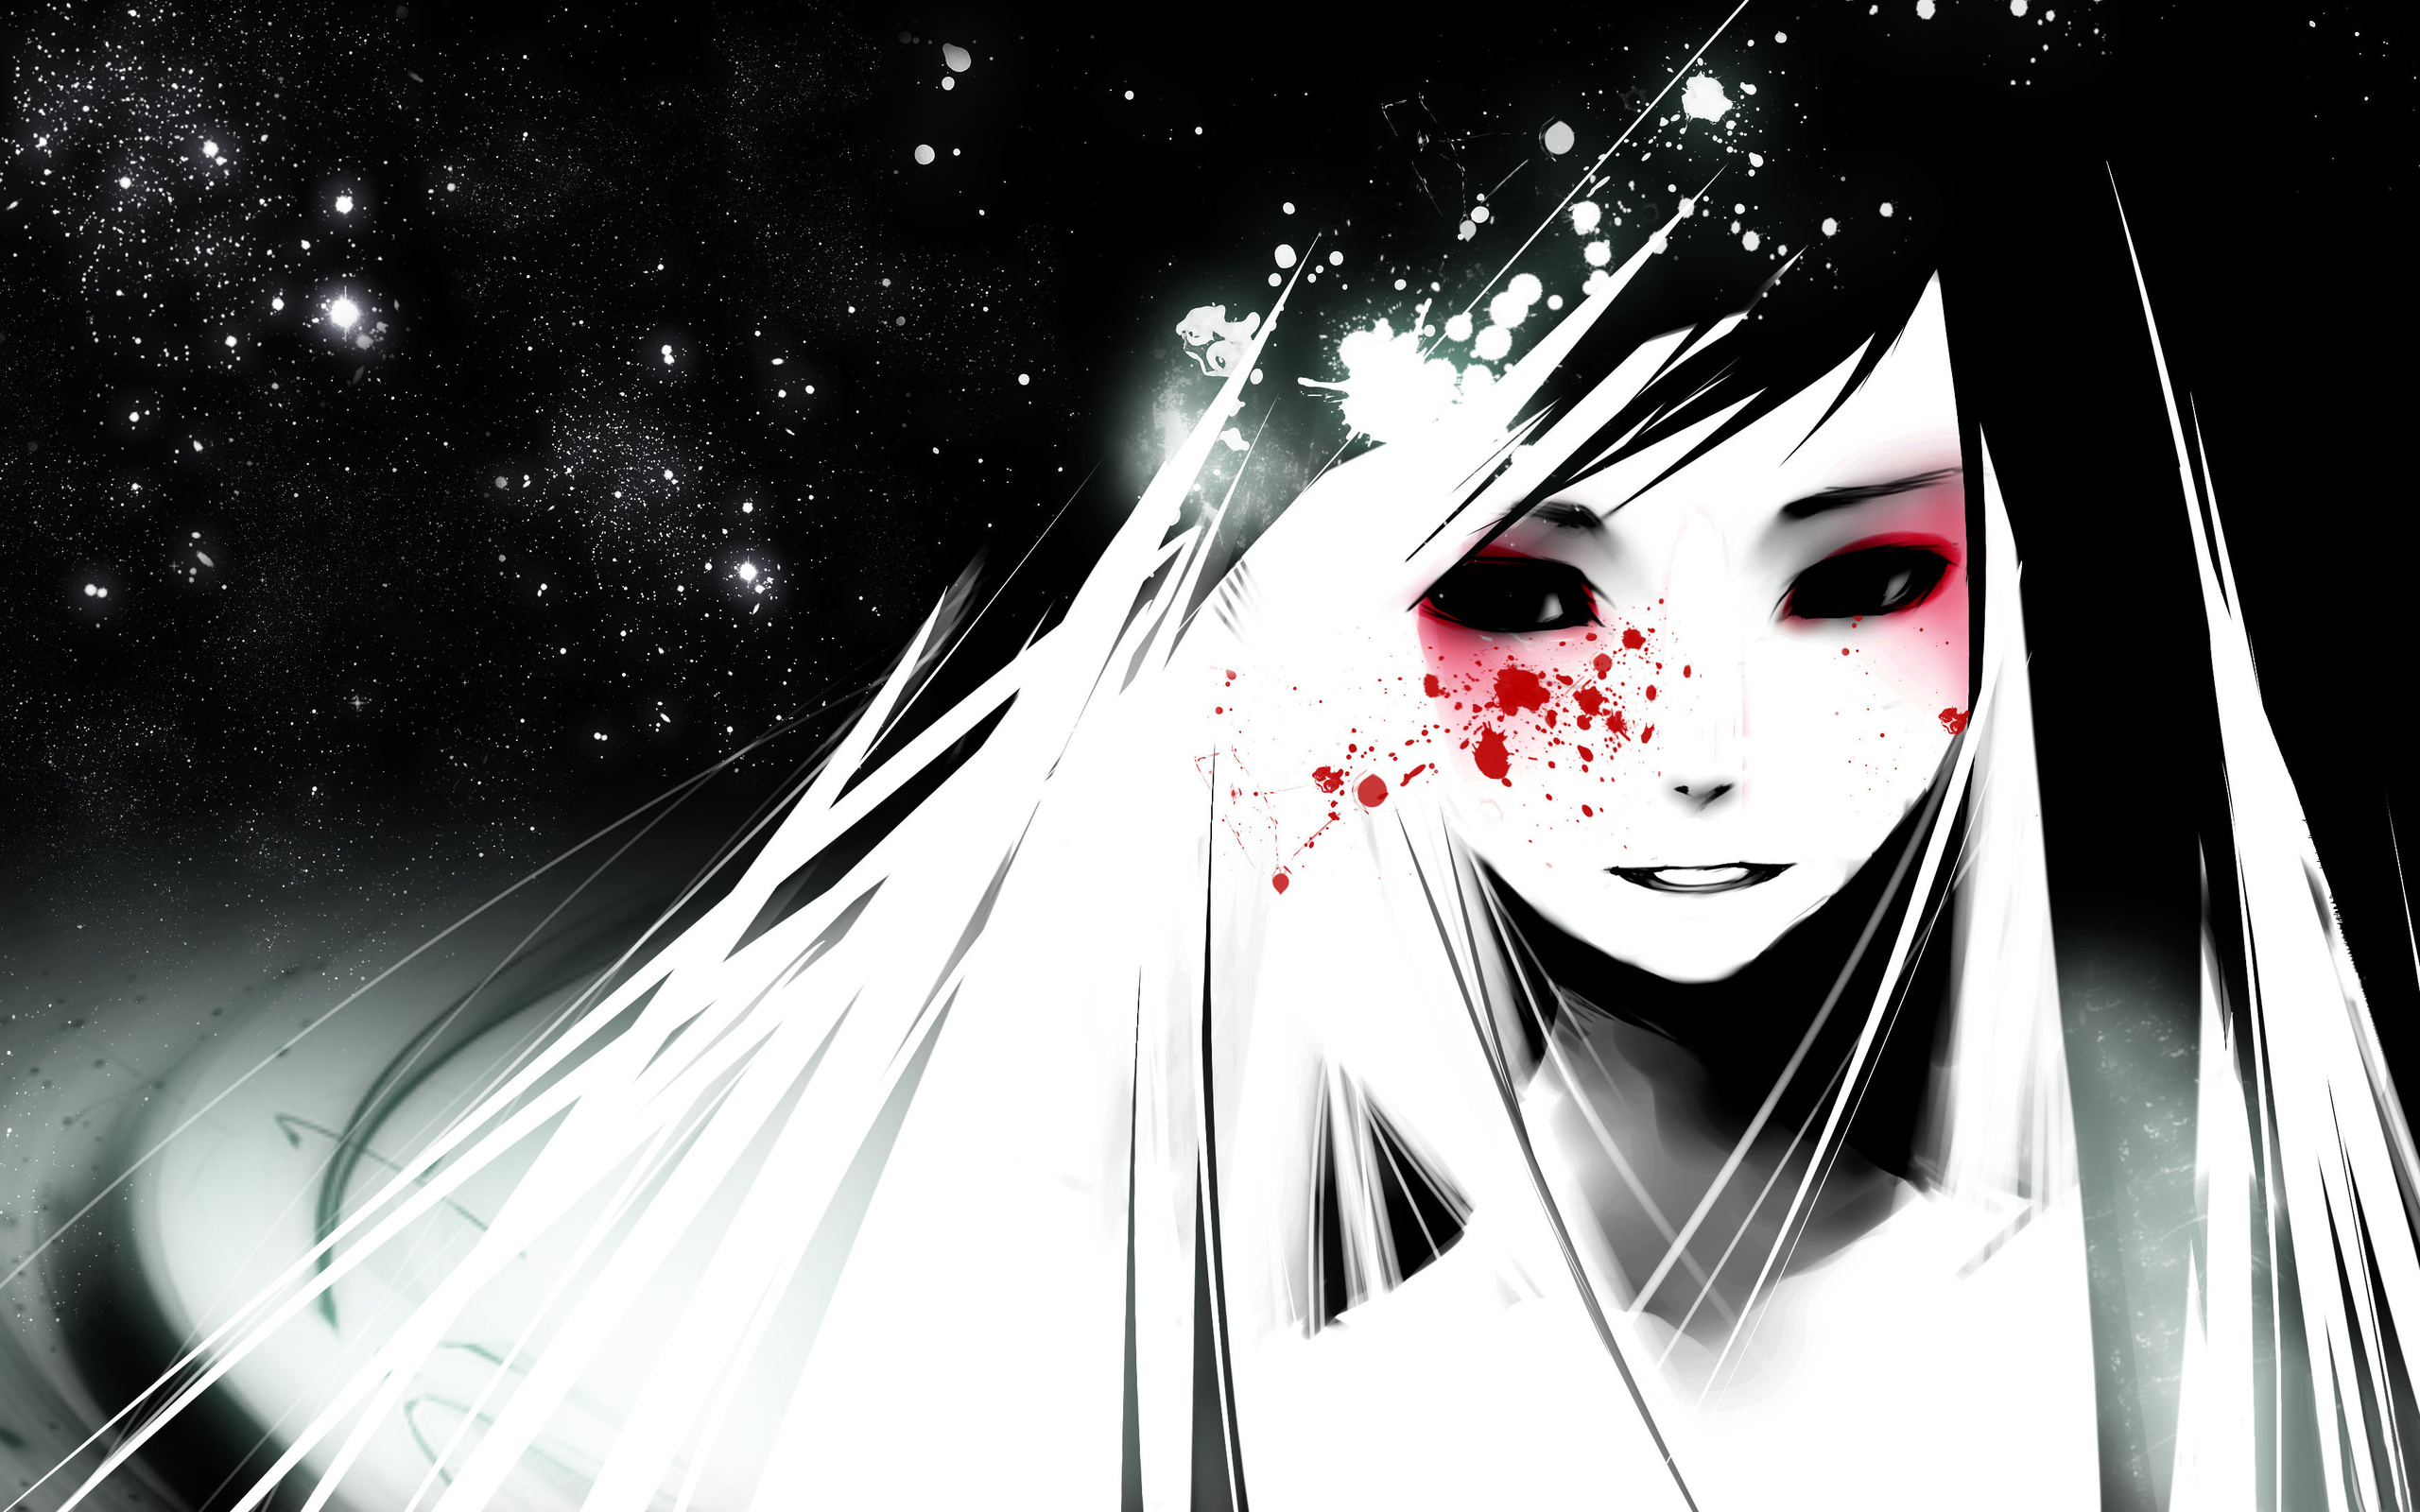 Dark Anime Cartoon Girl Hd Image  Hd Wallpapers